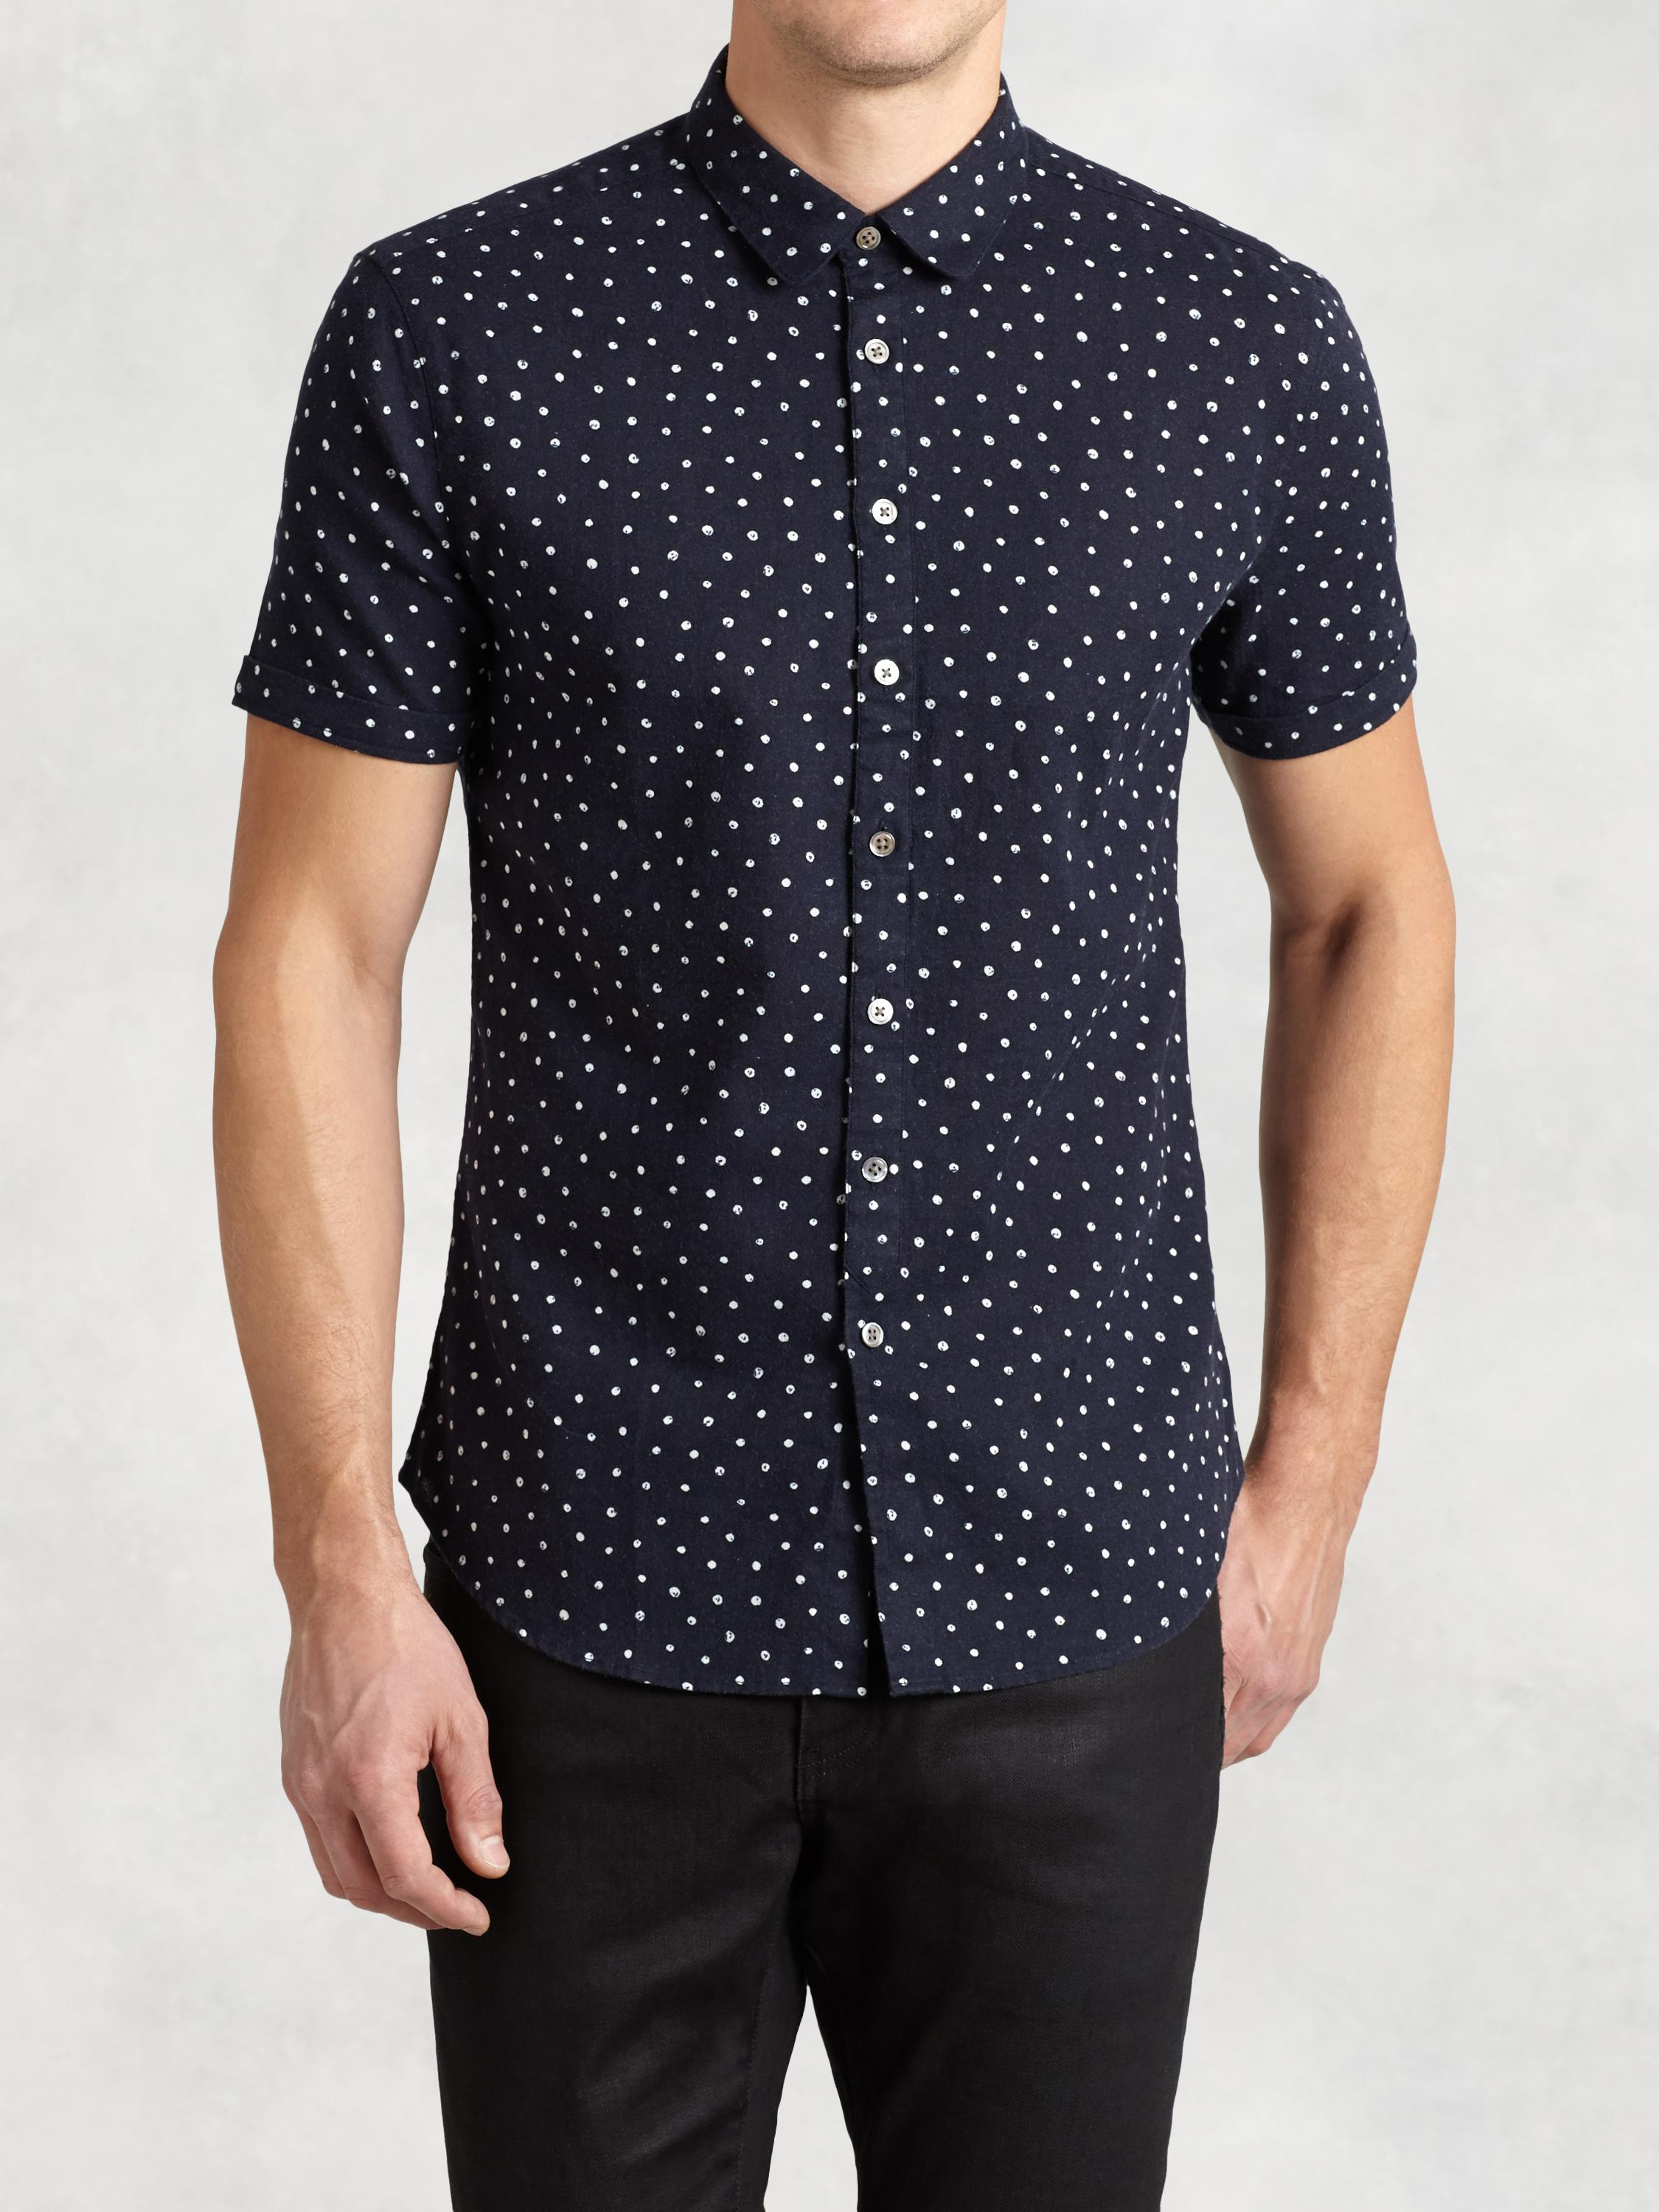 Abstract Polka Dot Short Sleeve Shirt